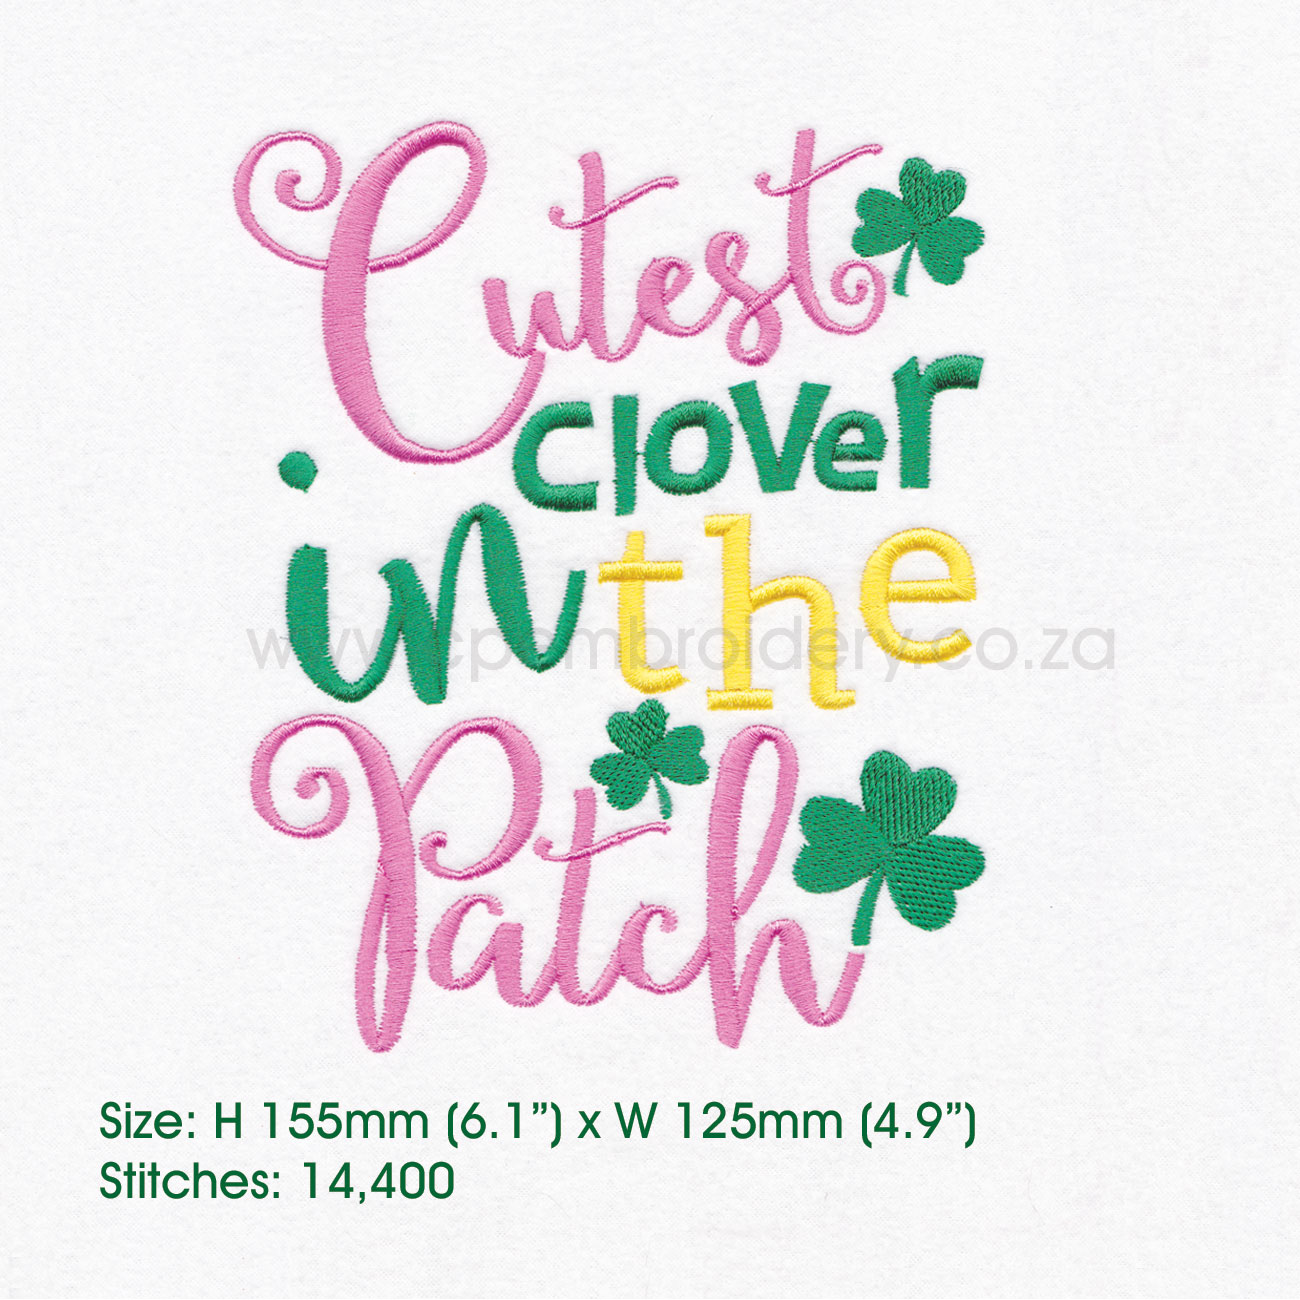 Cutest Clover in the Patch St Patrick's Day Design example image 6